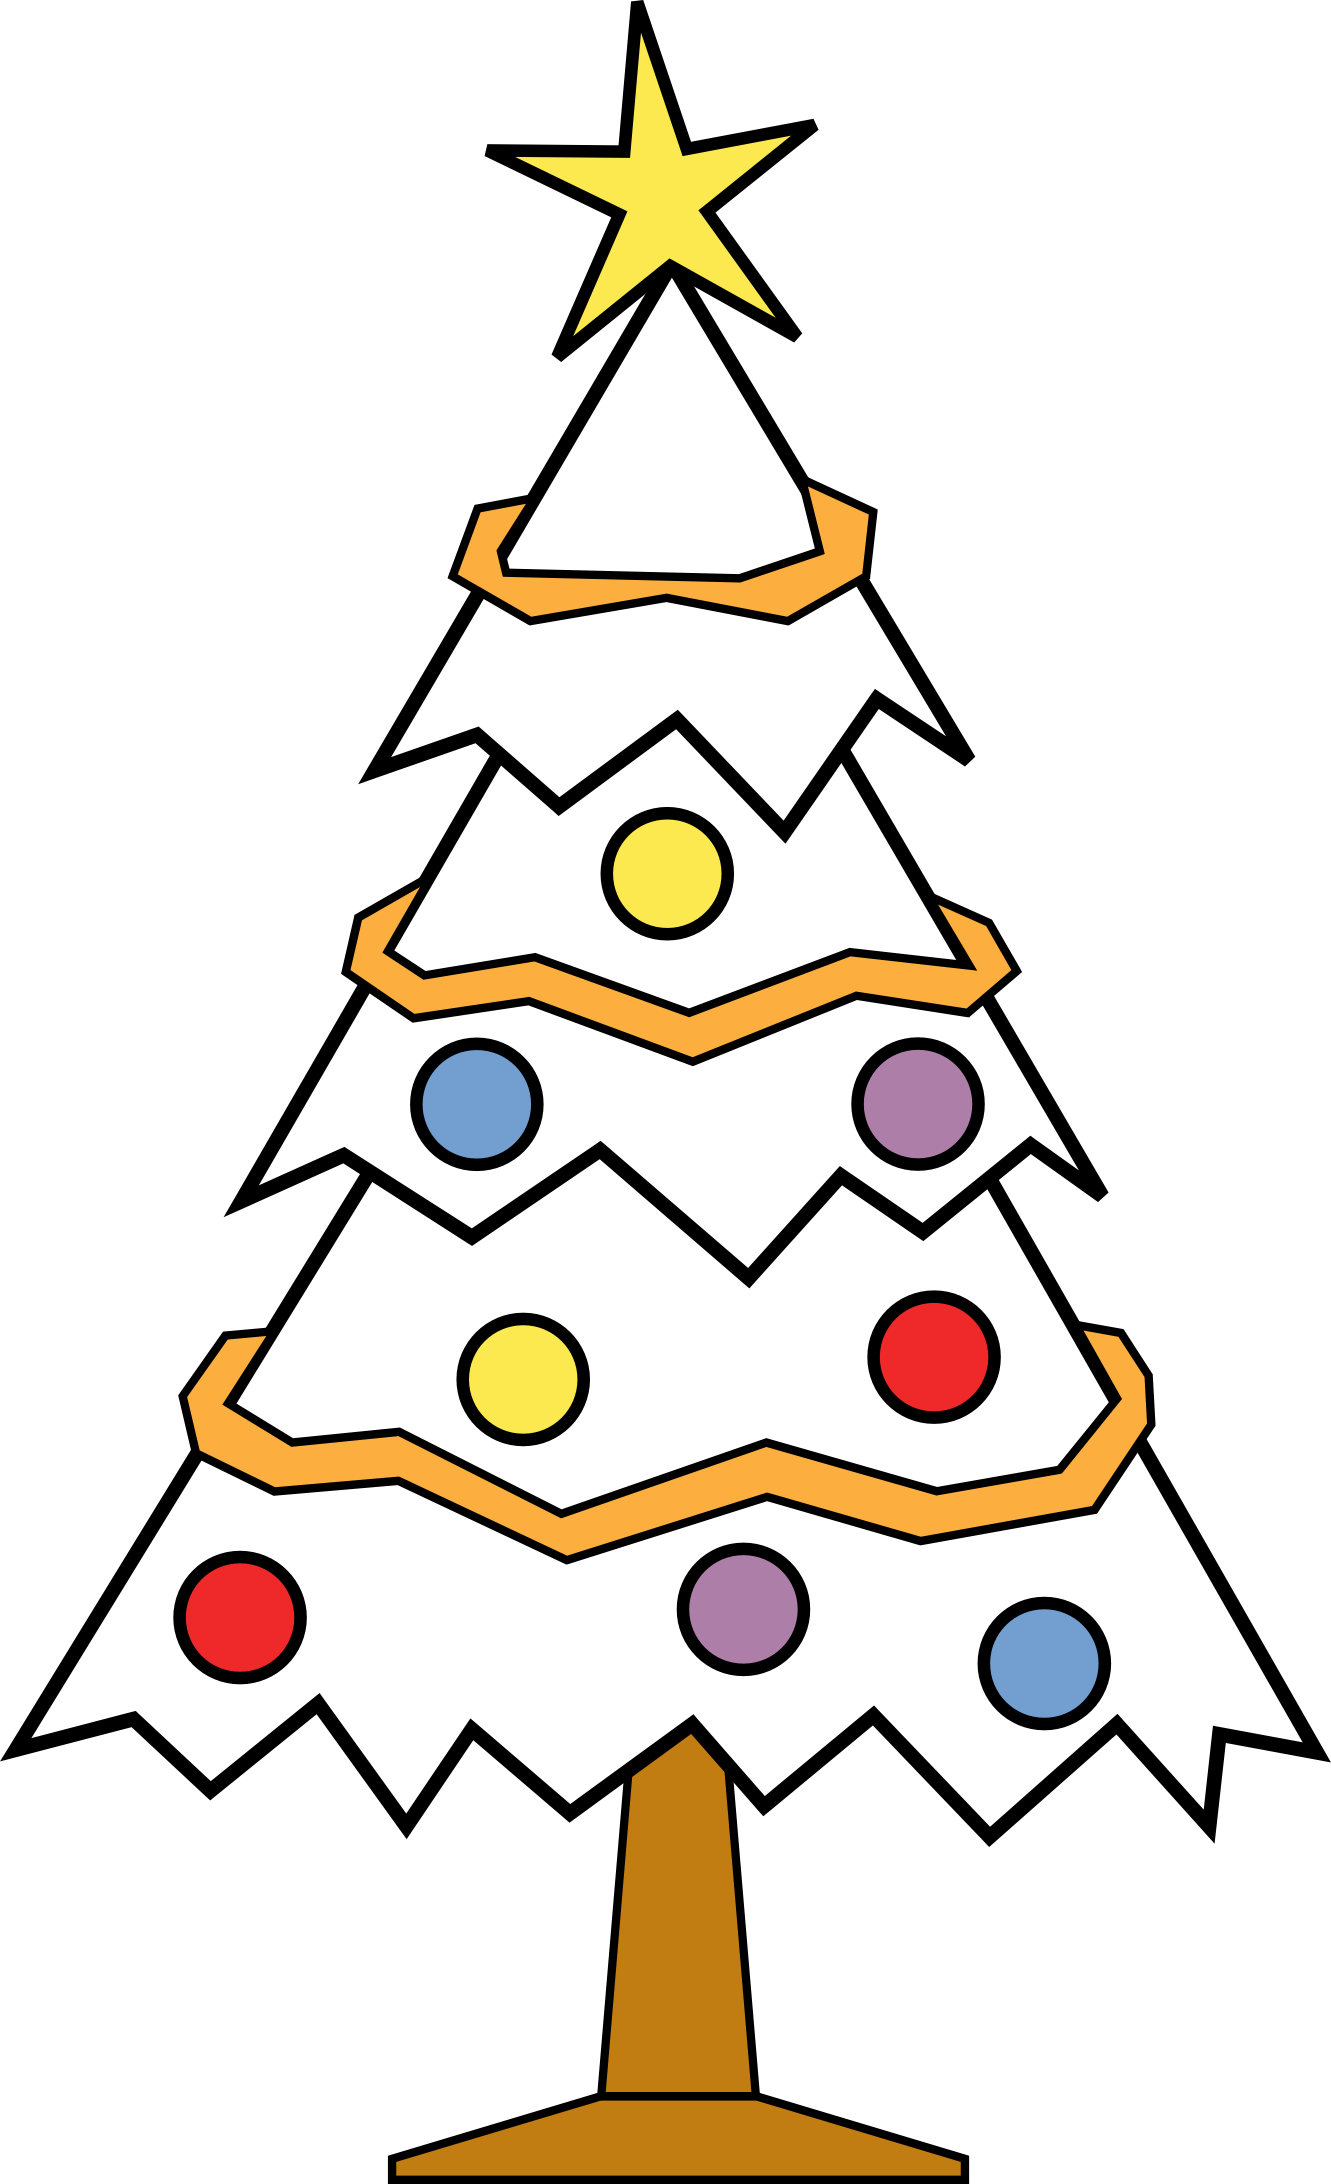 Black And White Christmas Tree Clipart - ClipArt Best